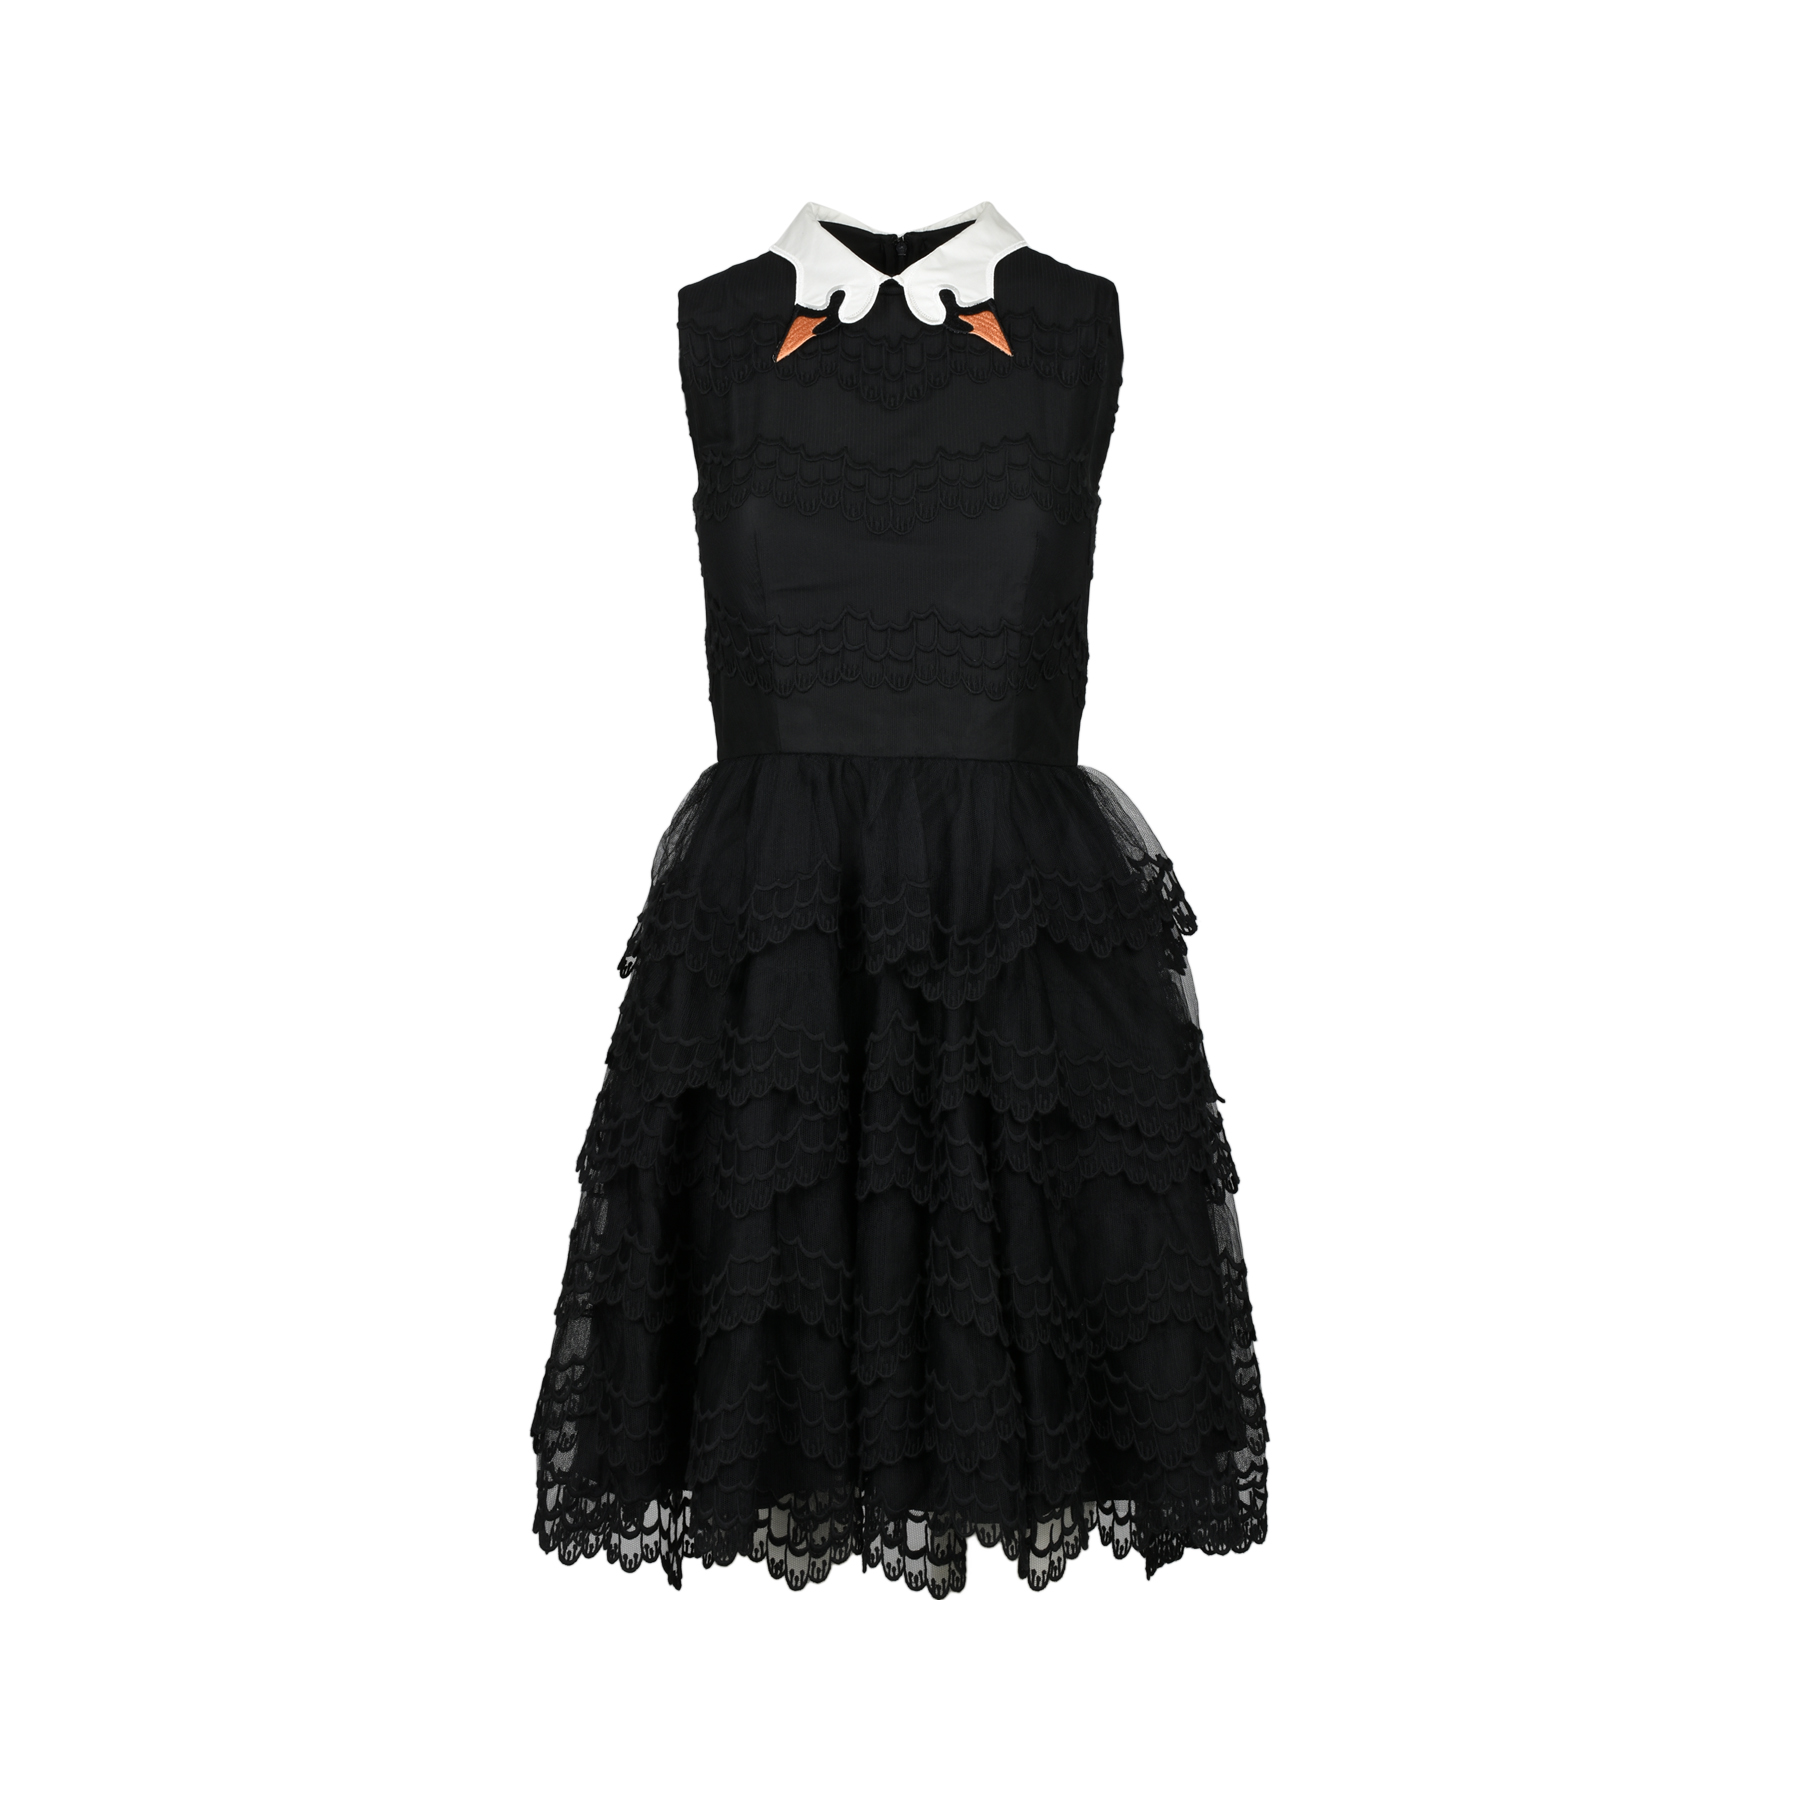 6a7a668f7f5 Authentic Second Hand RED Valentino Black Swan Collar Scallop-lace Dress  (PSS-047-00177)